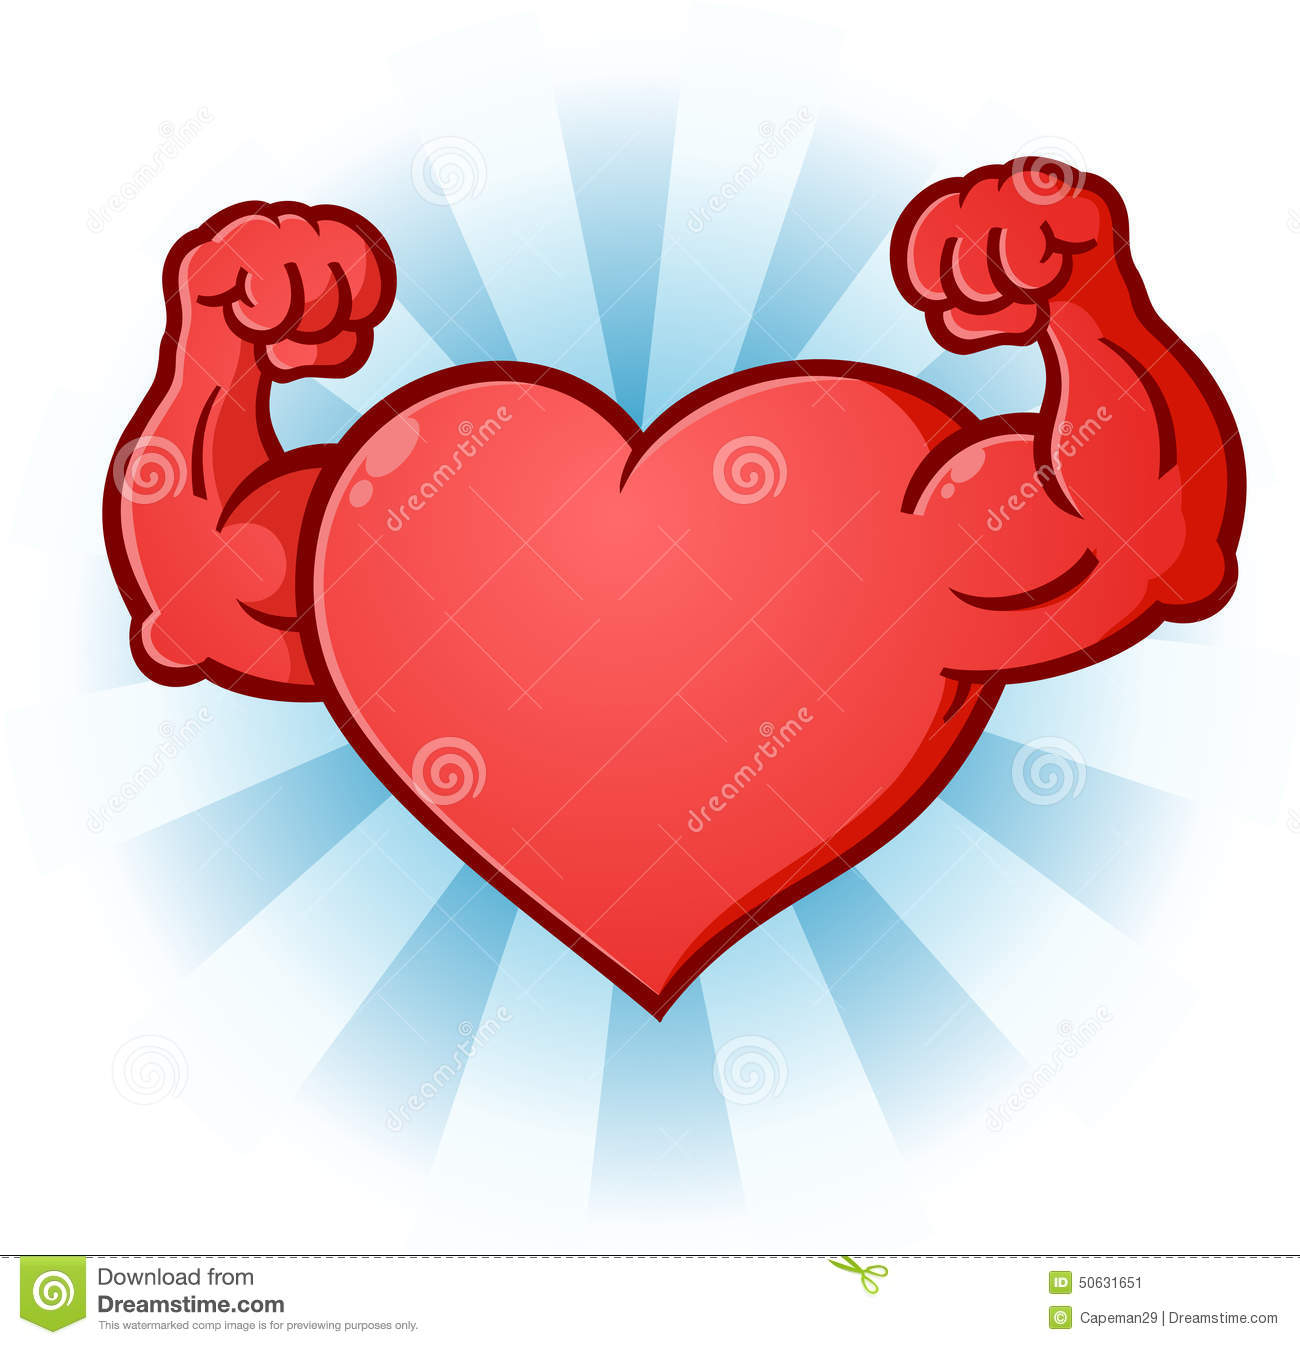 Heart Flexing Muscles Cartoon Character Stock Vector - Image: 50631651